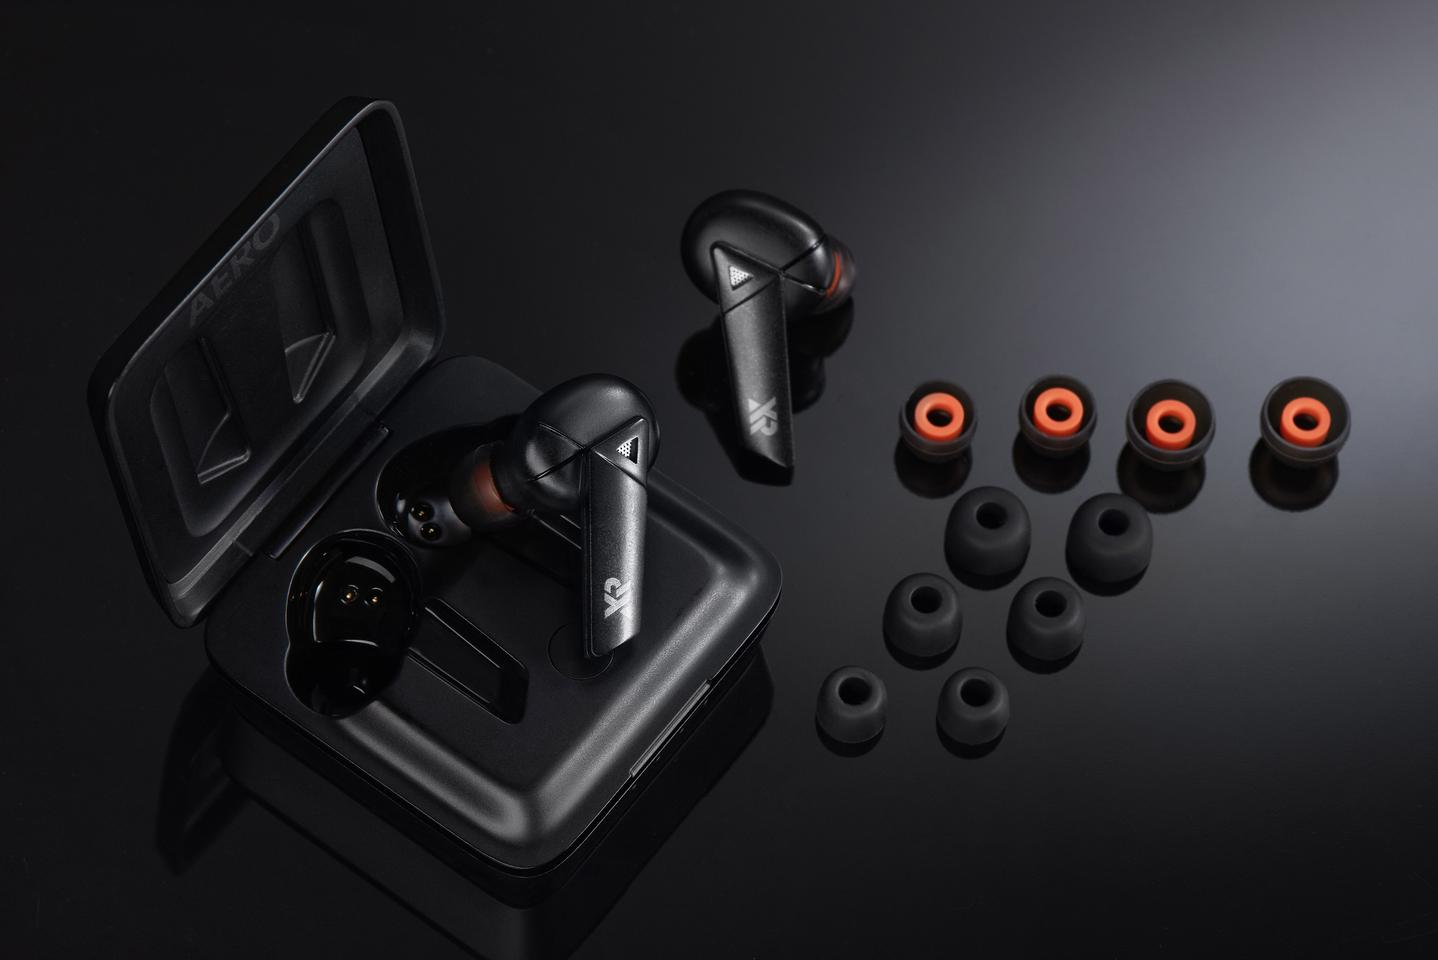 The Aeros come with six different ear tip options